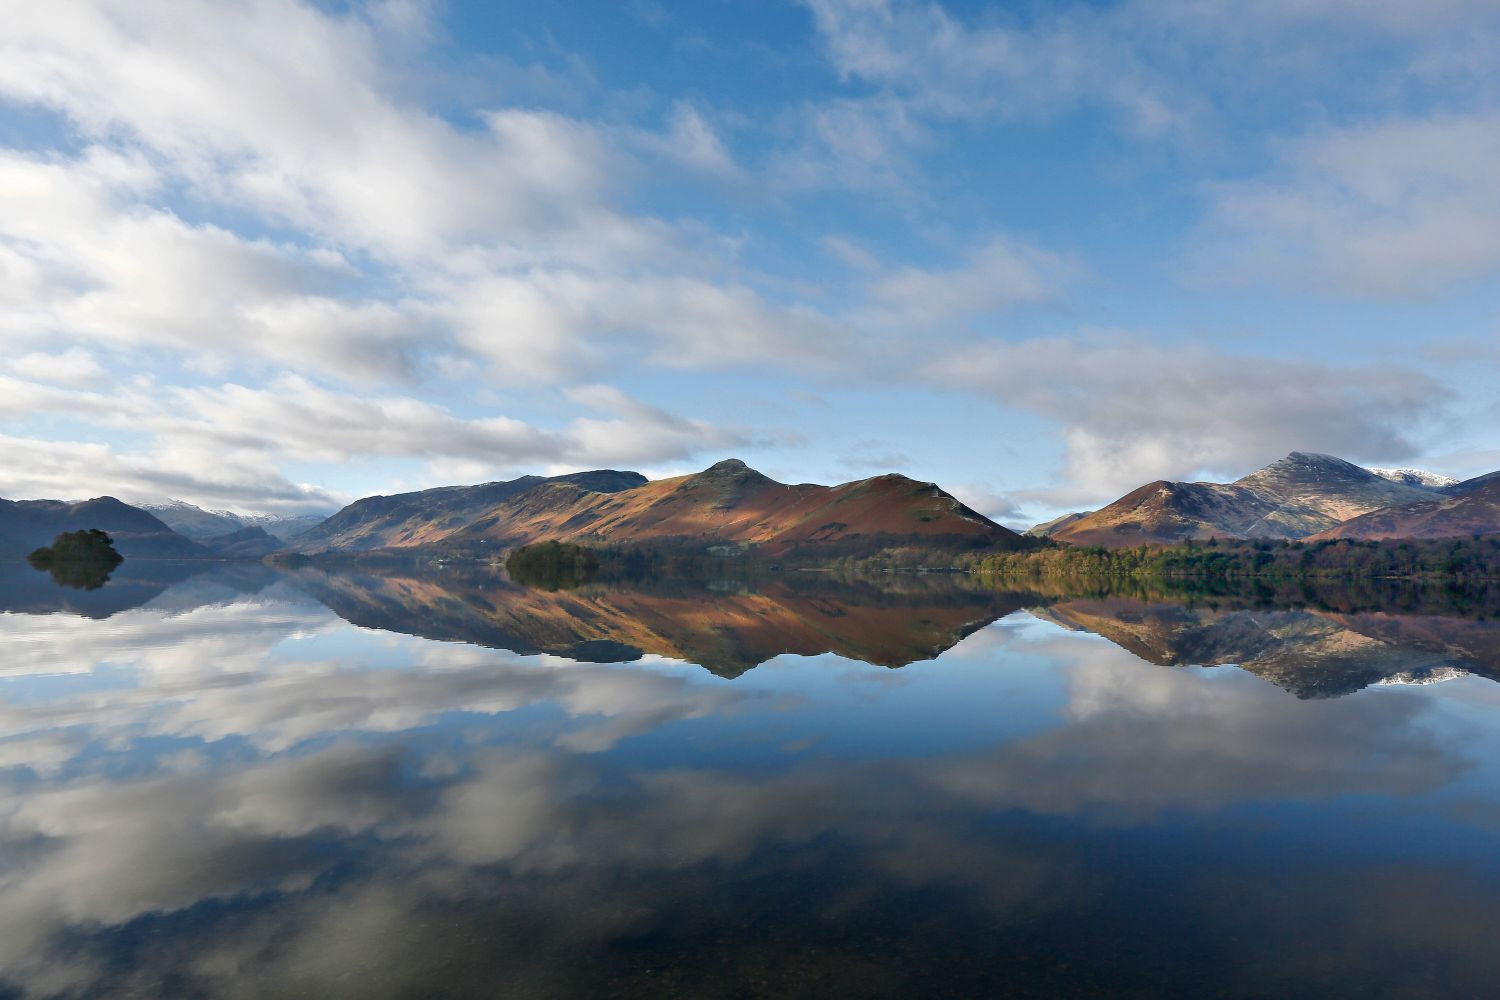 A view across Derwentwater from Strandshag Bay with a backdrop of Catbells and Causey Pike.